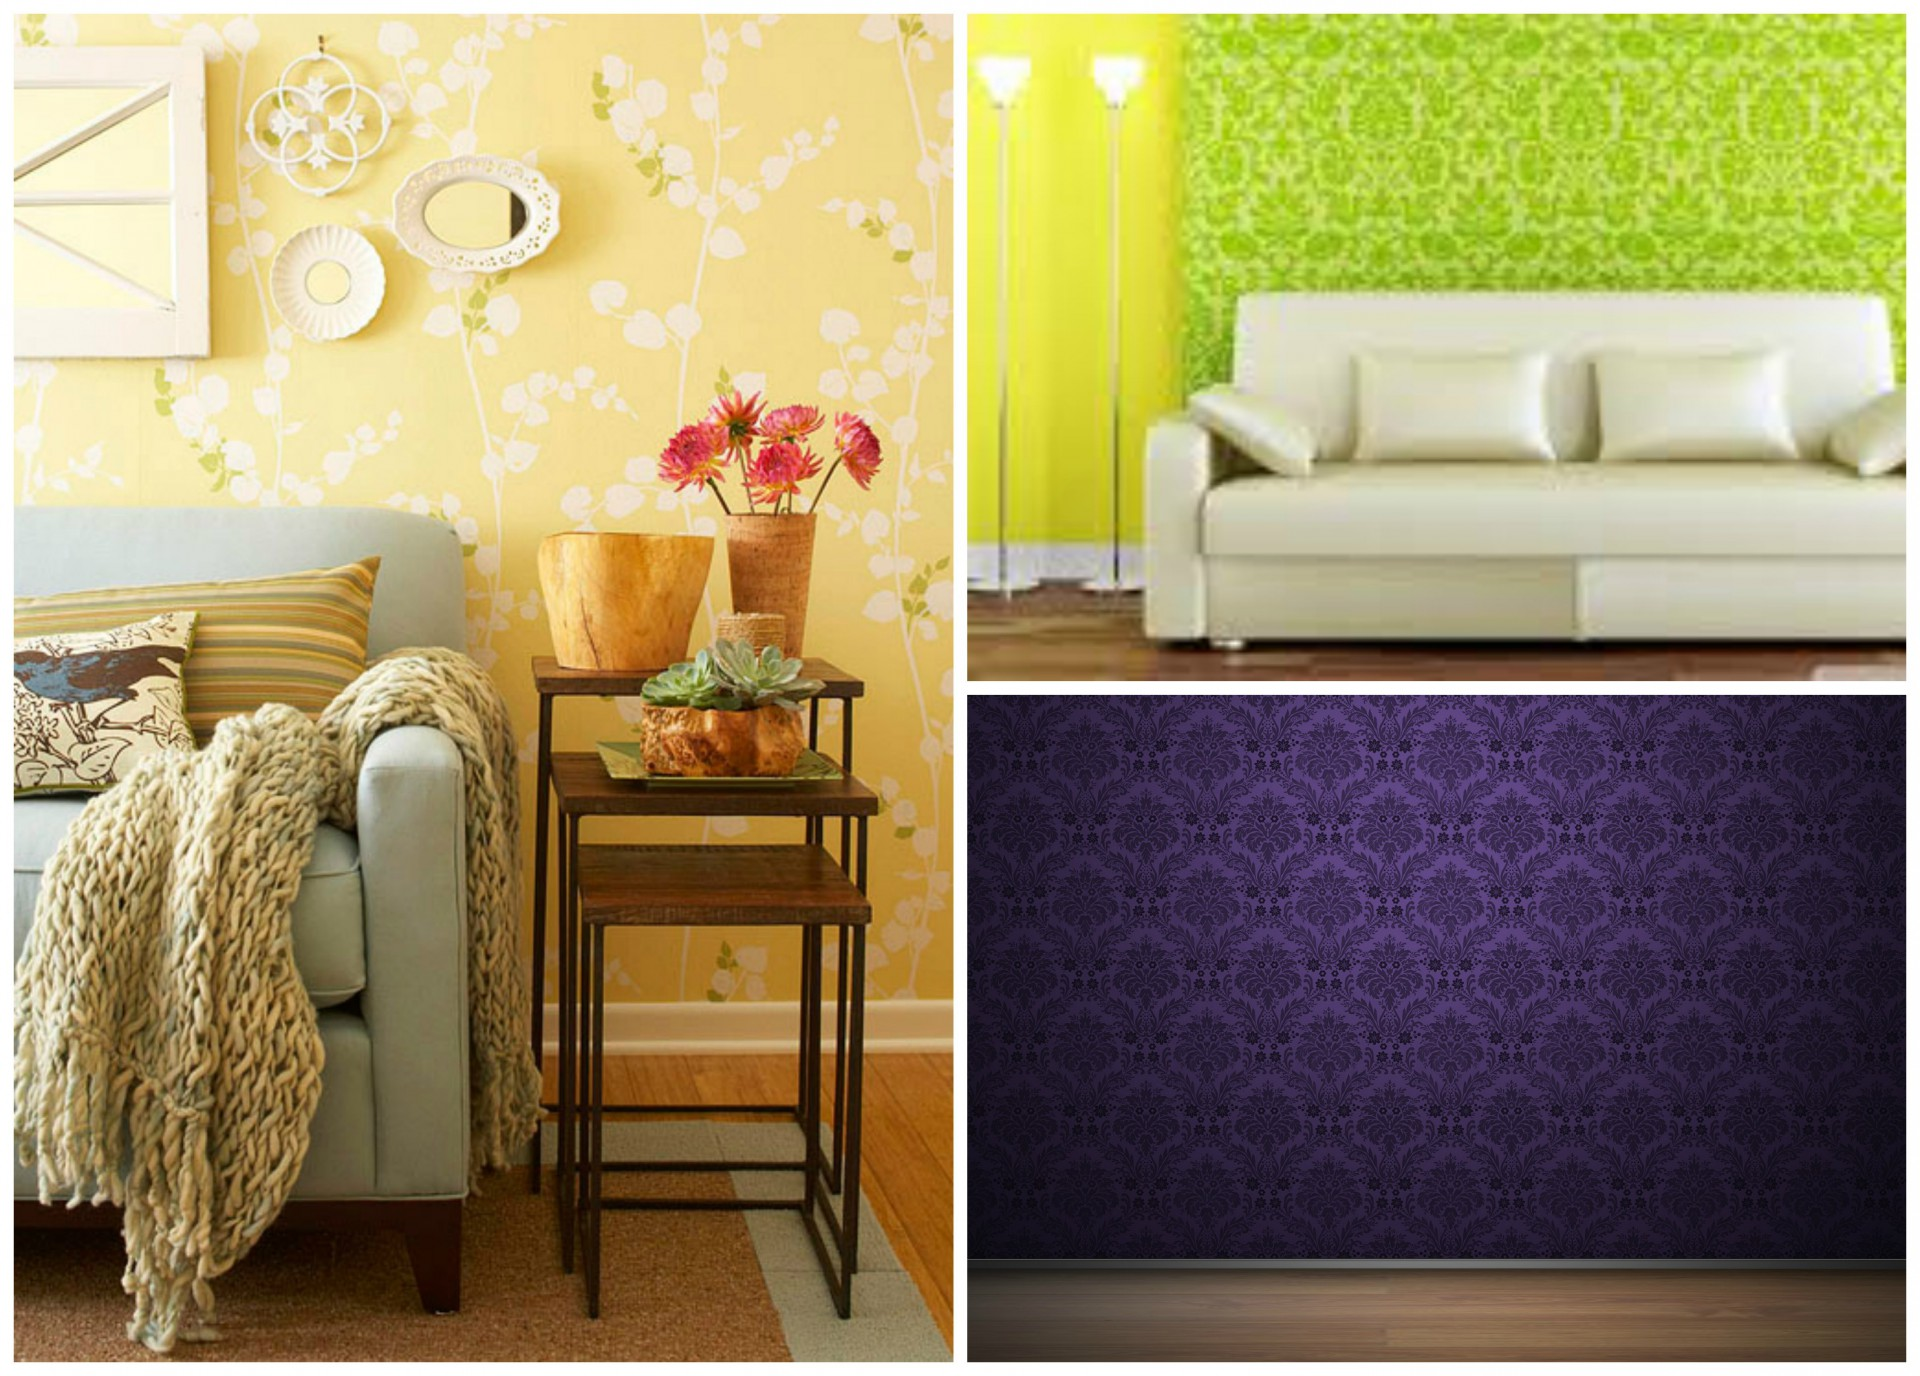 Spruce up your Bare Walls | Homes Re-Imagined